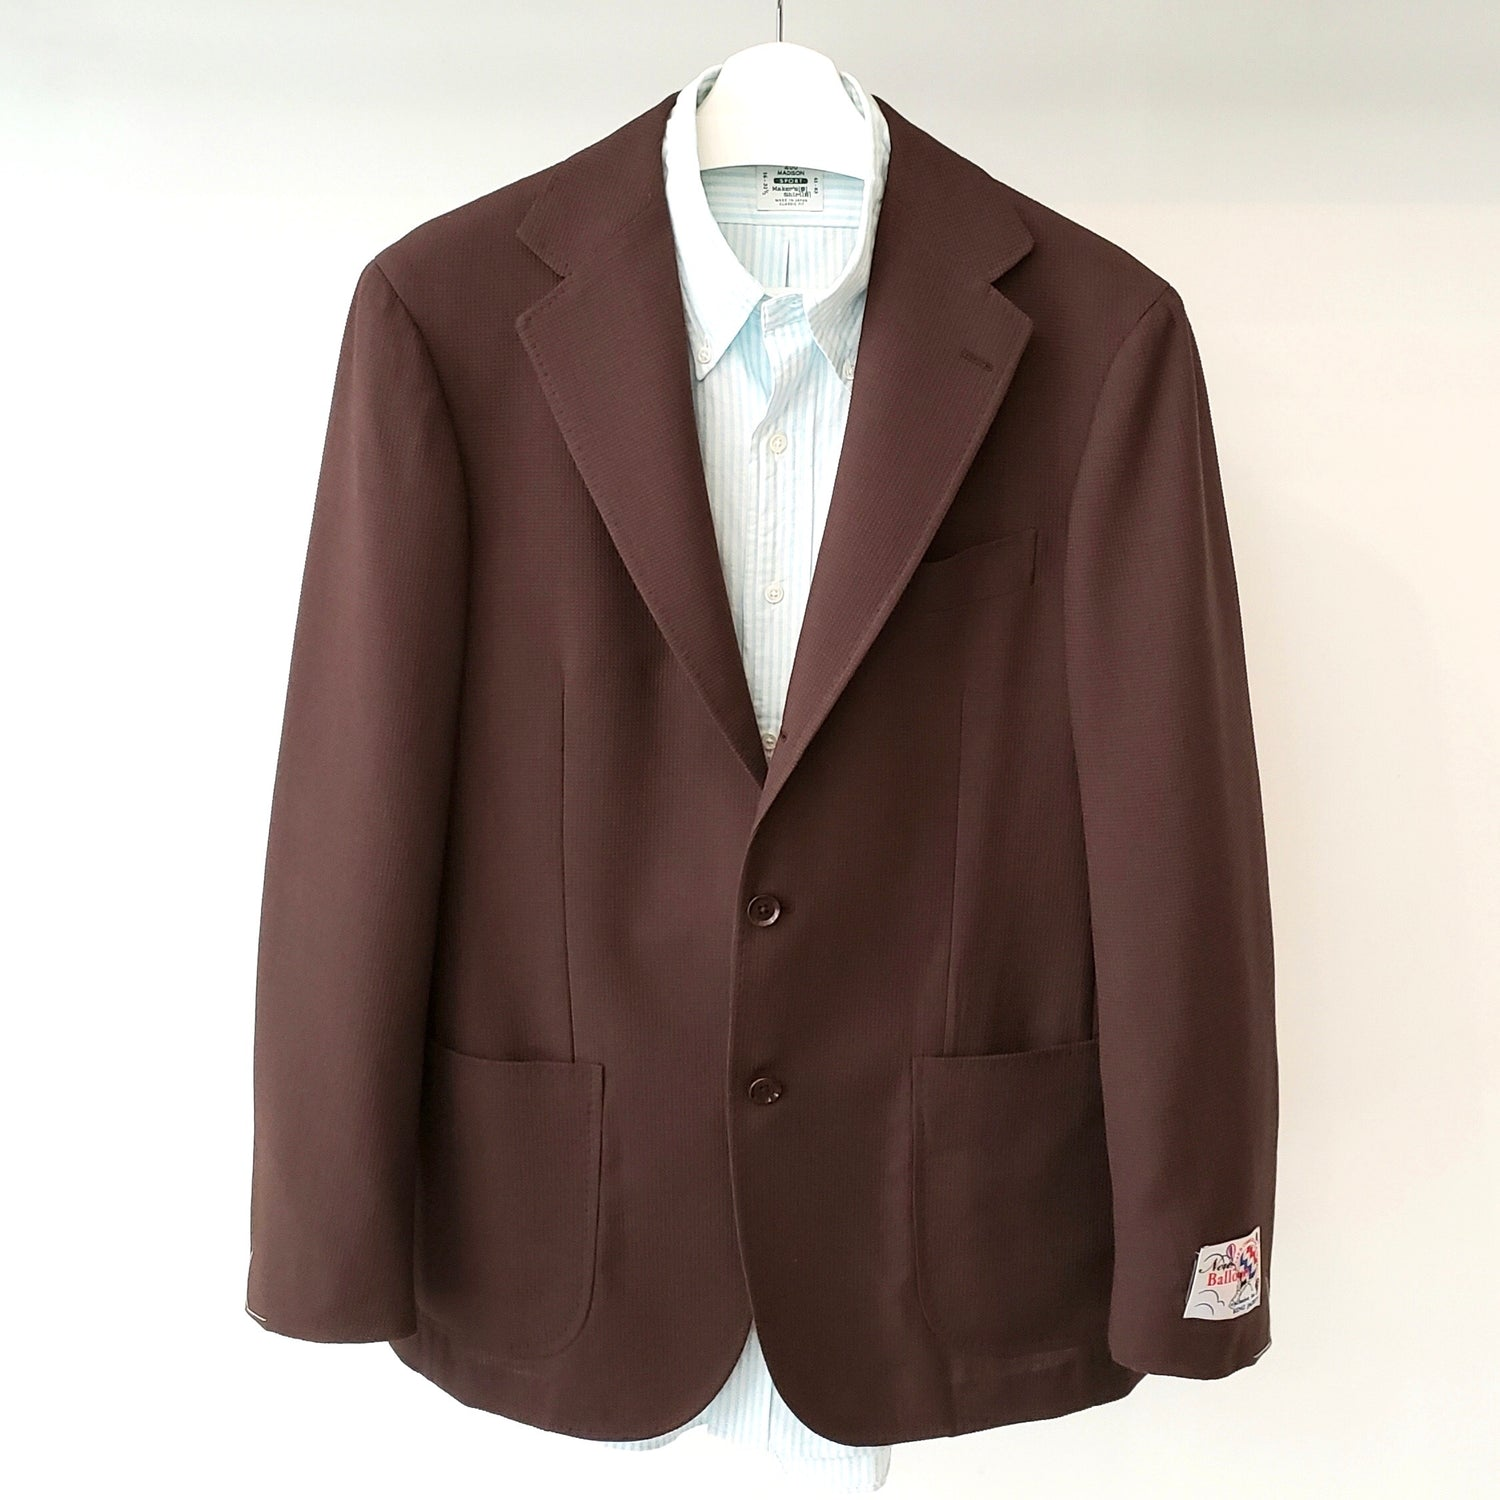 Ring Jacket Brown Ballon Jacket